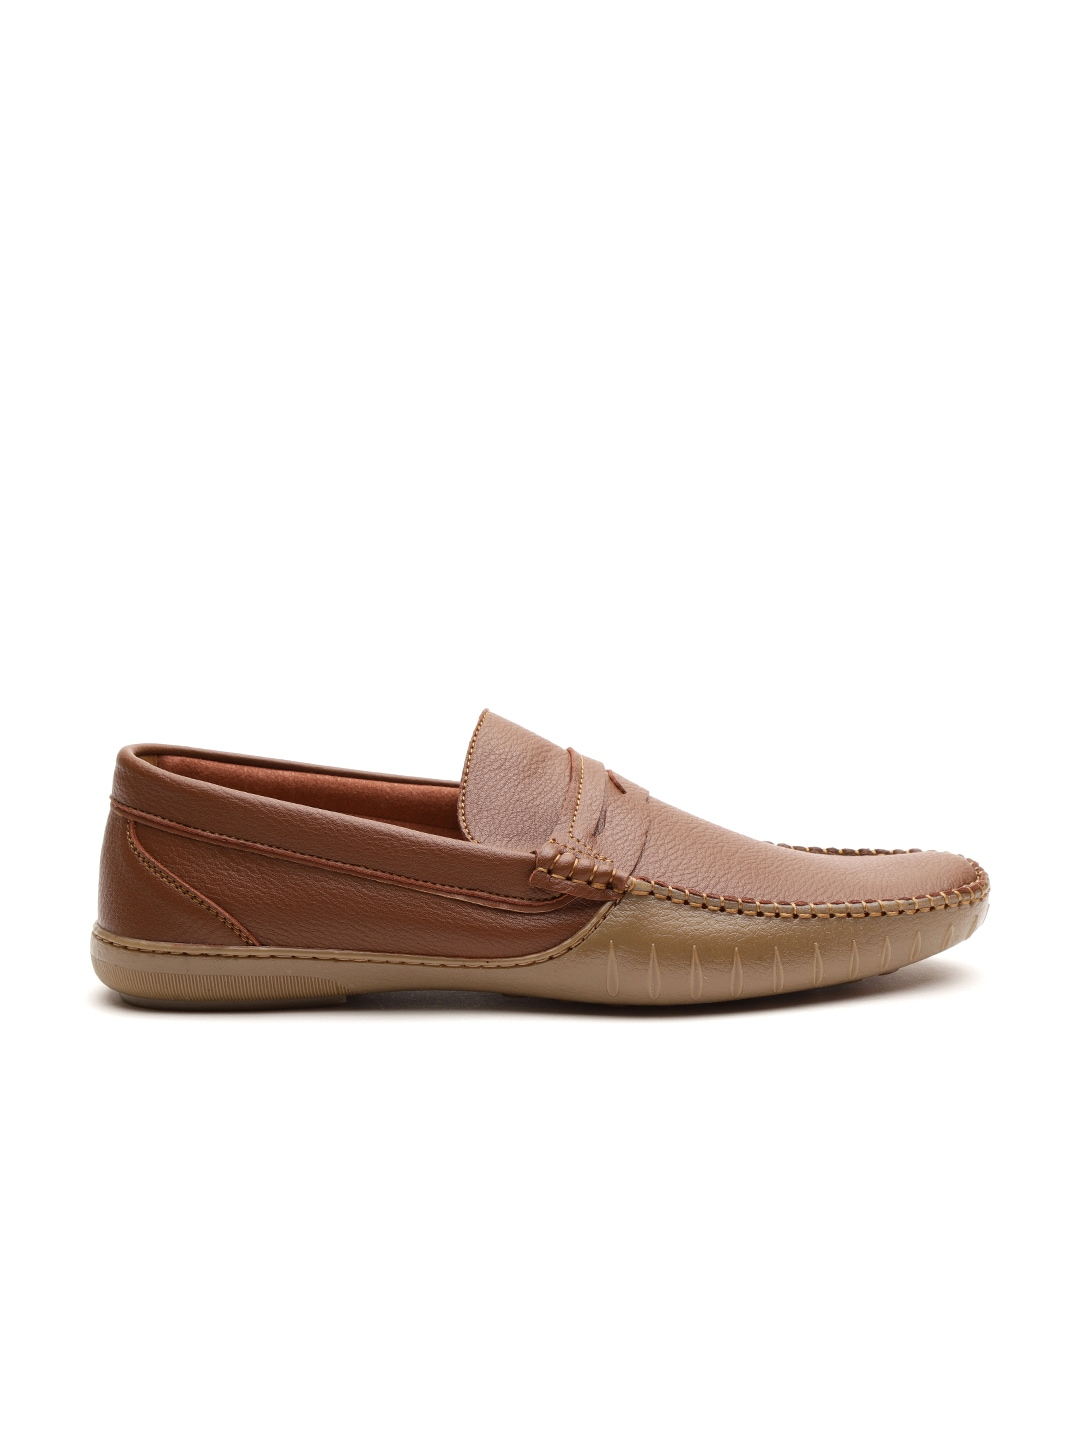 fbcce4411e76 Casual Shoes For Men - Buy Casual   Flat Shoes For Men